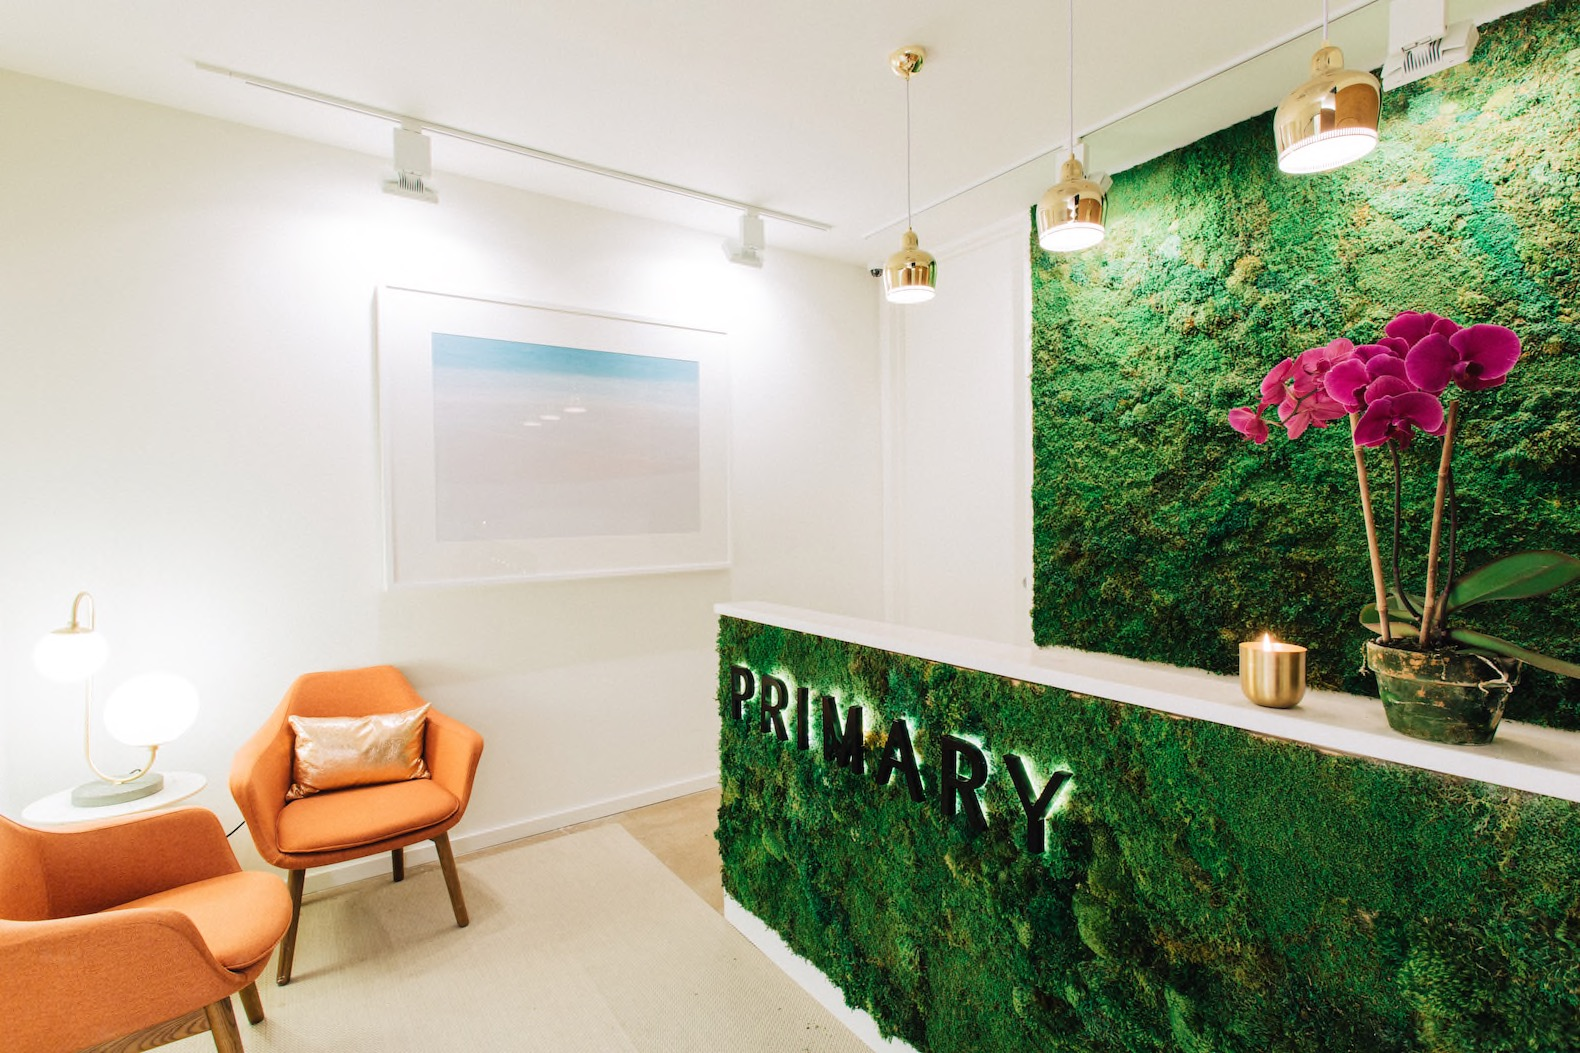 Green walls and a yoga studio are just some of the perks at this new wellness-focused co-working space